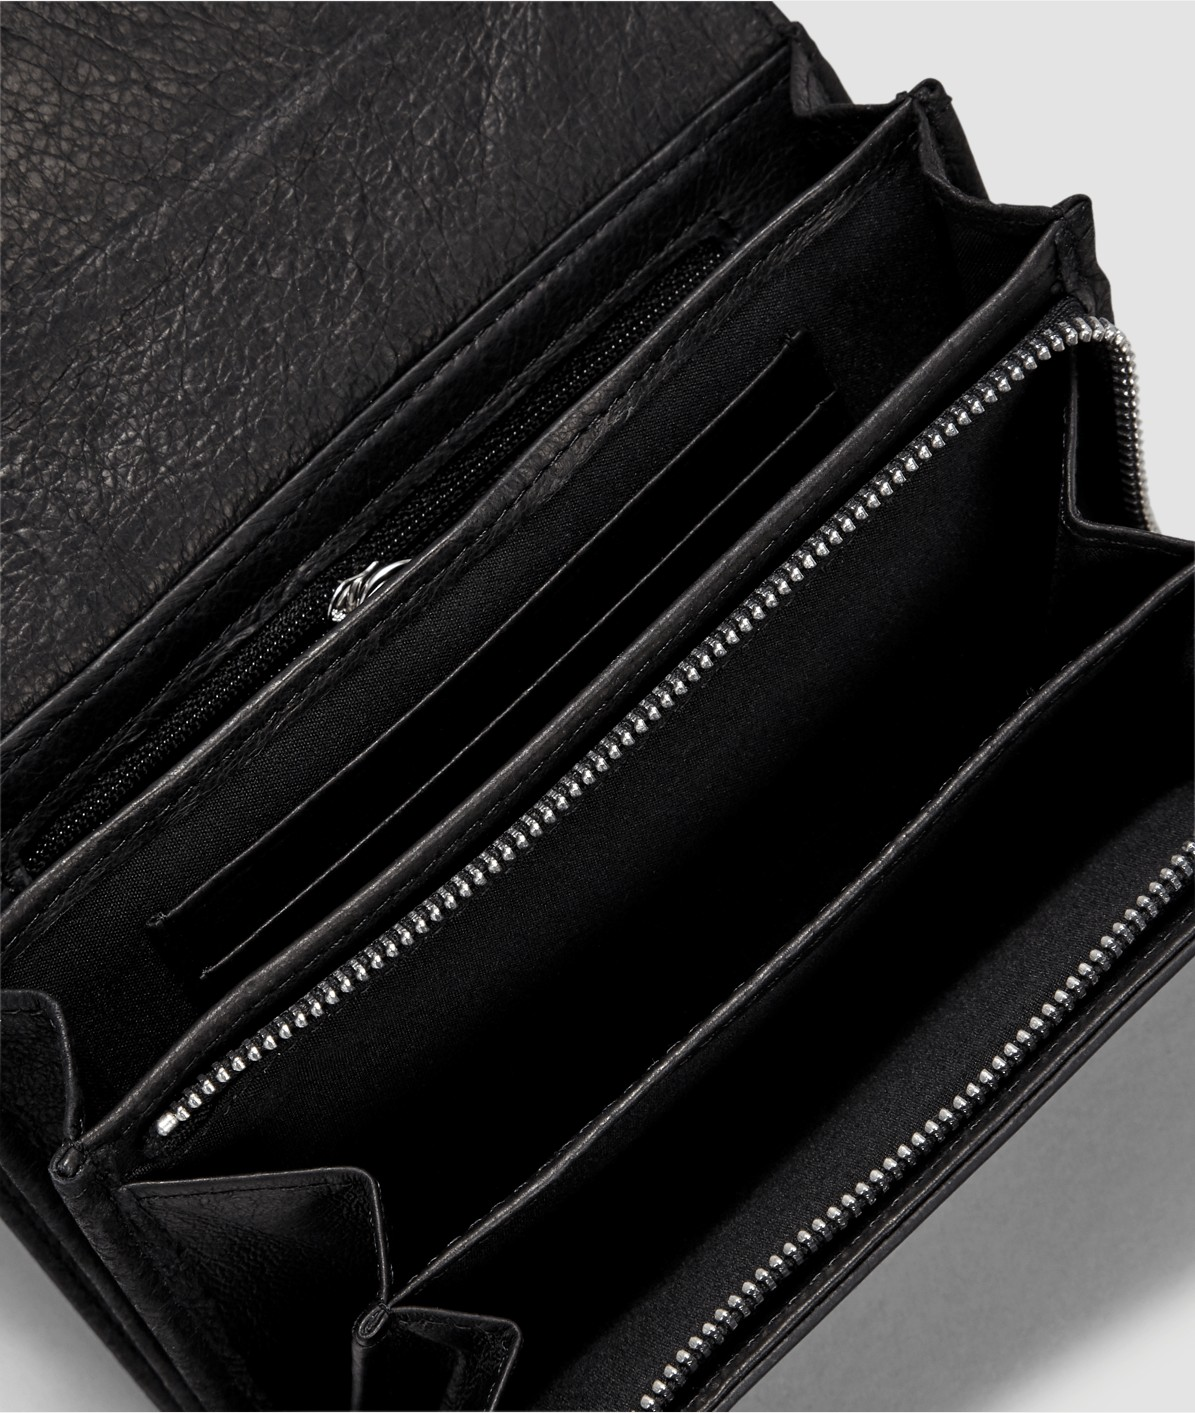 Purse with a patent leather detail from liebeskind